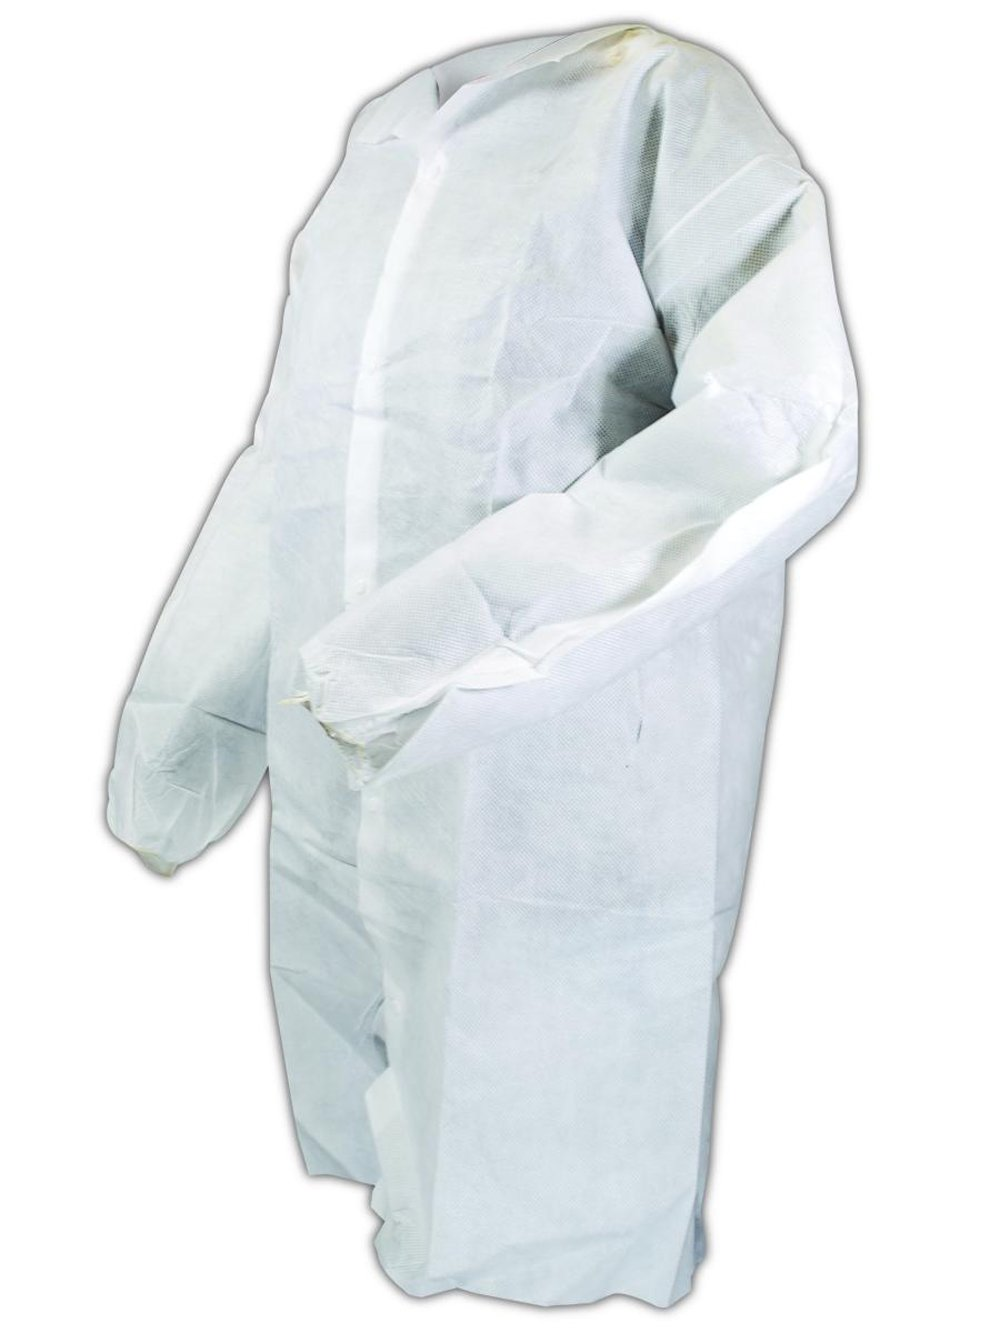 Magid C8XXL EconoWear Lite N Kool SMS Disposable Lab Coat with Snap Front, 2XL, White (Case of 50)